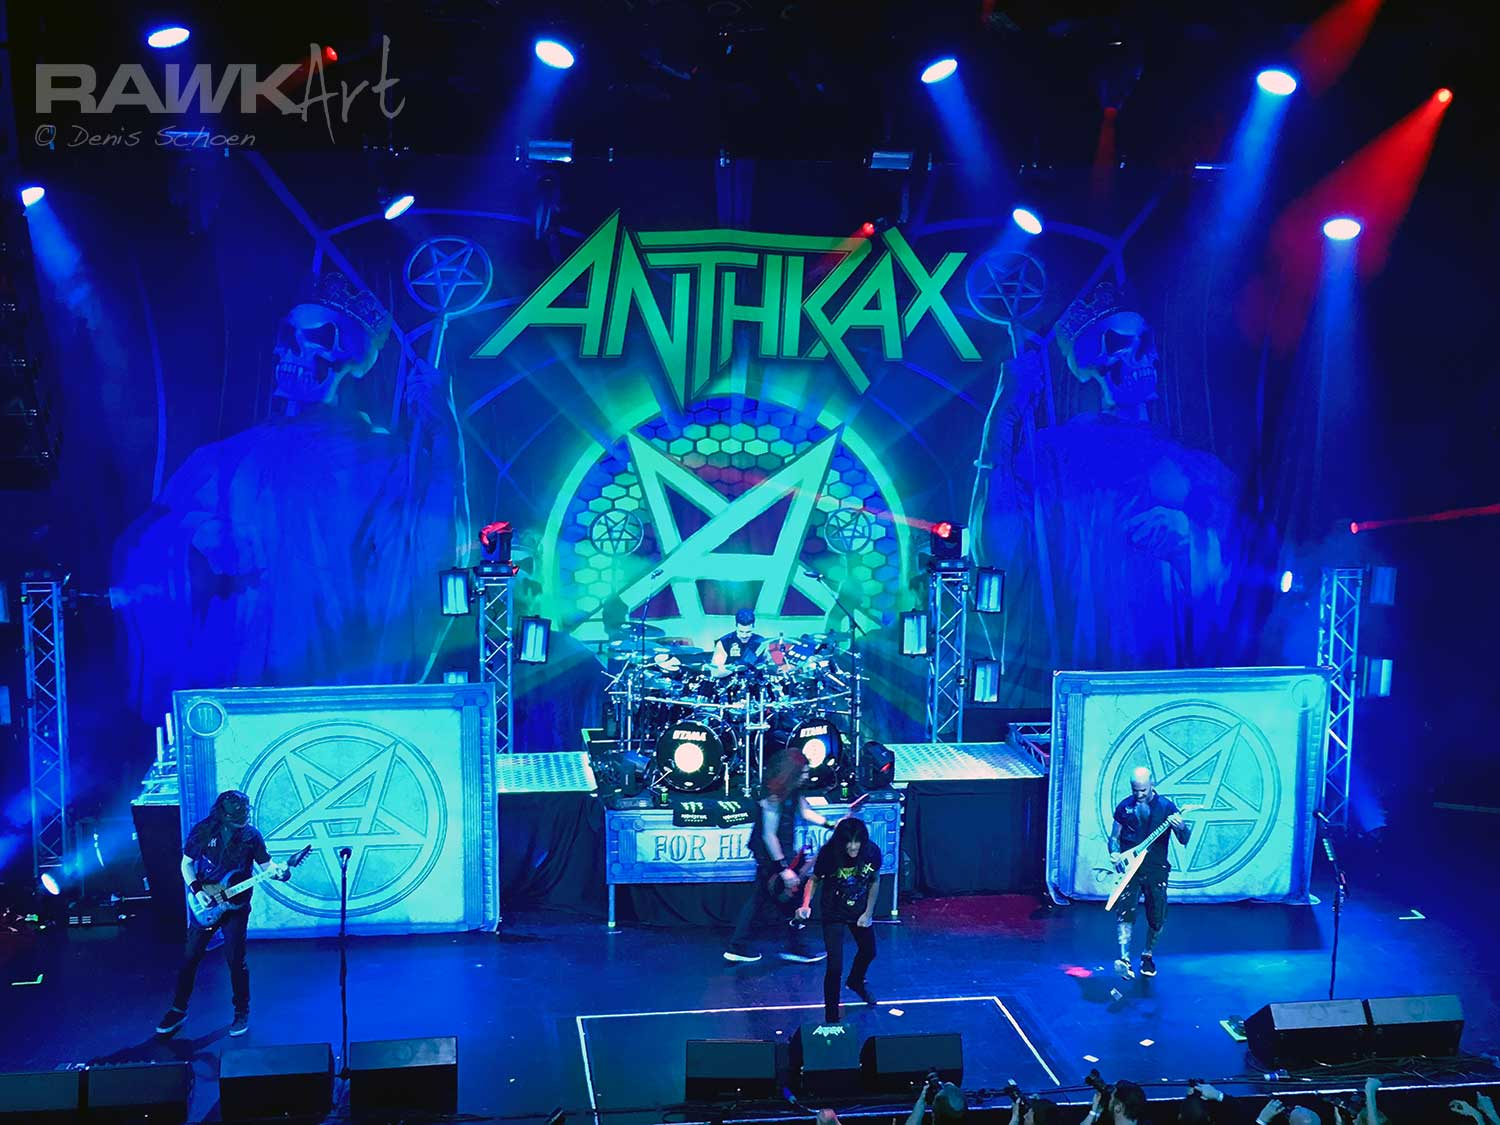 Anthrax at TivoliVredenburg Ronda, Utrecht, Netherlands 2017, Among the Kings